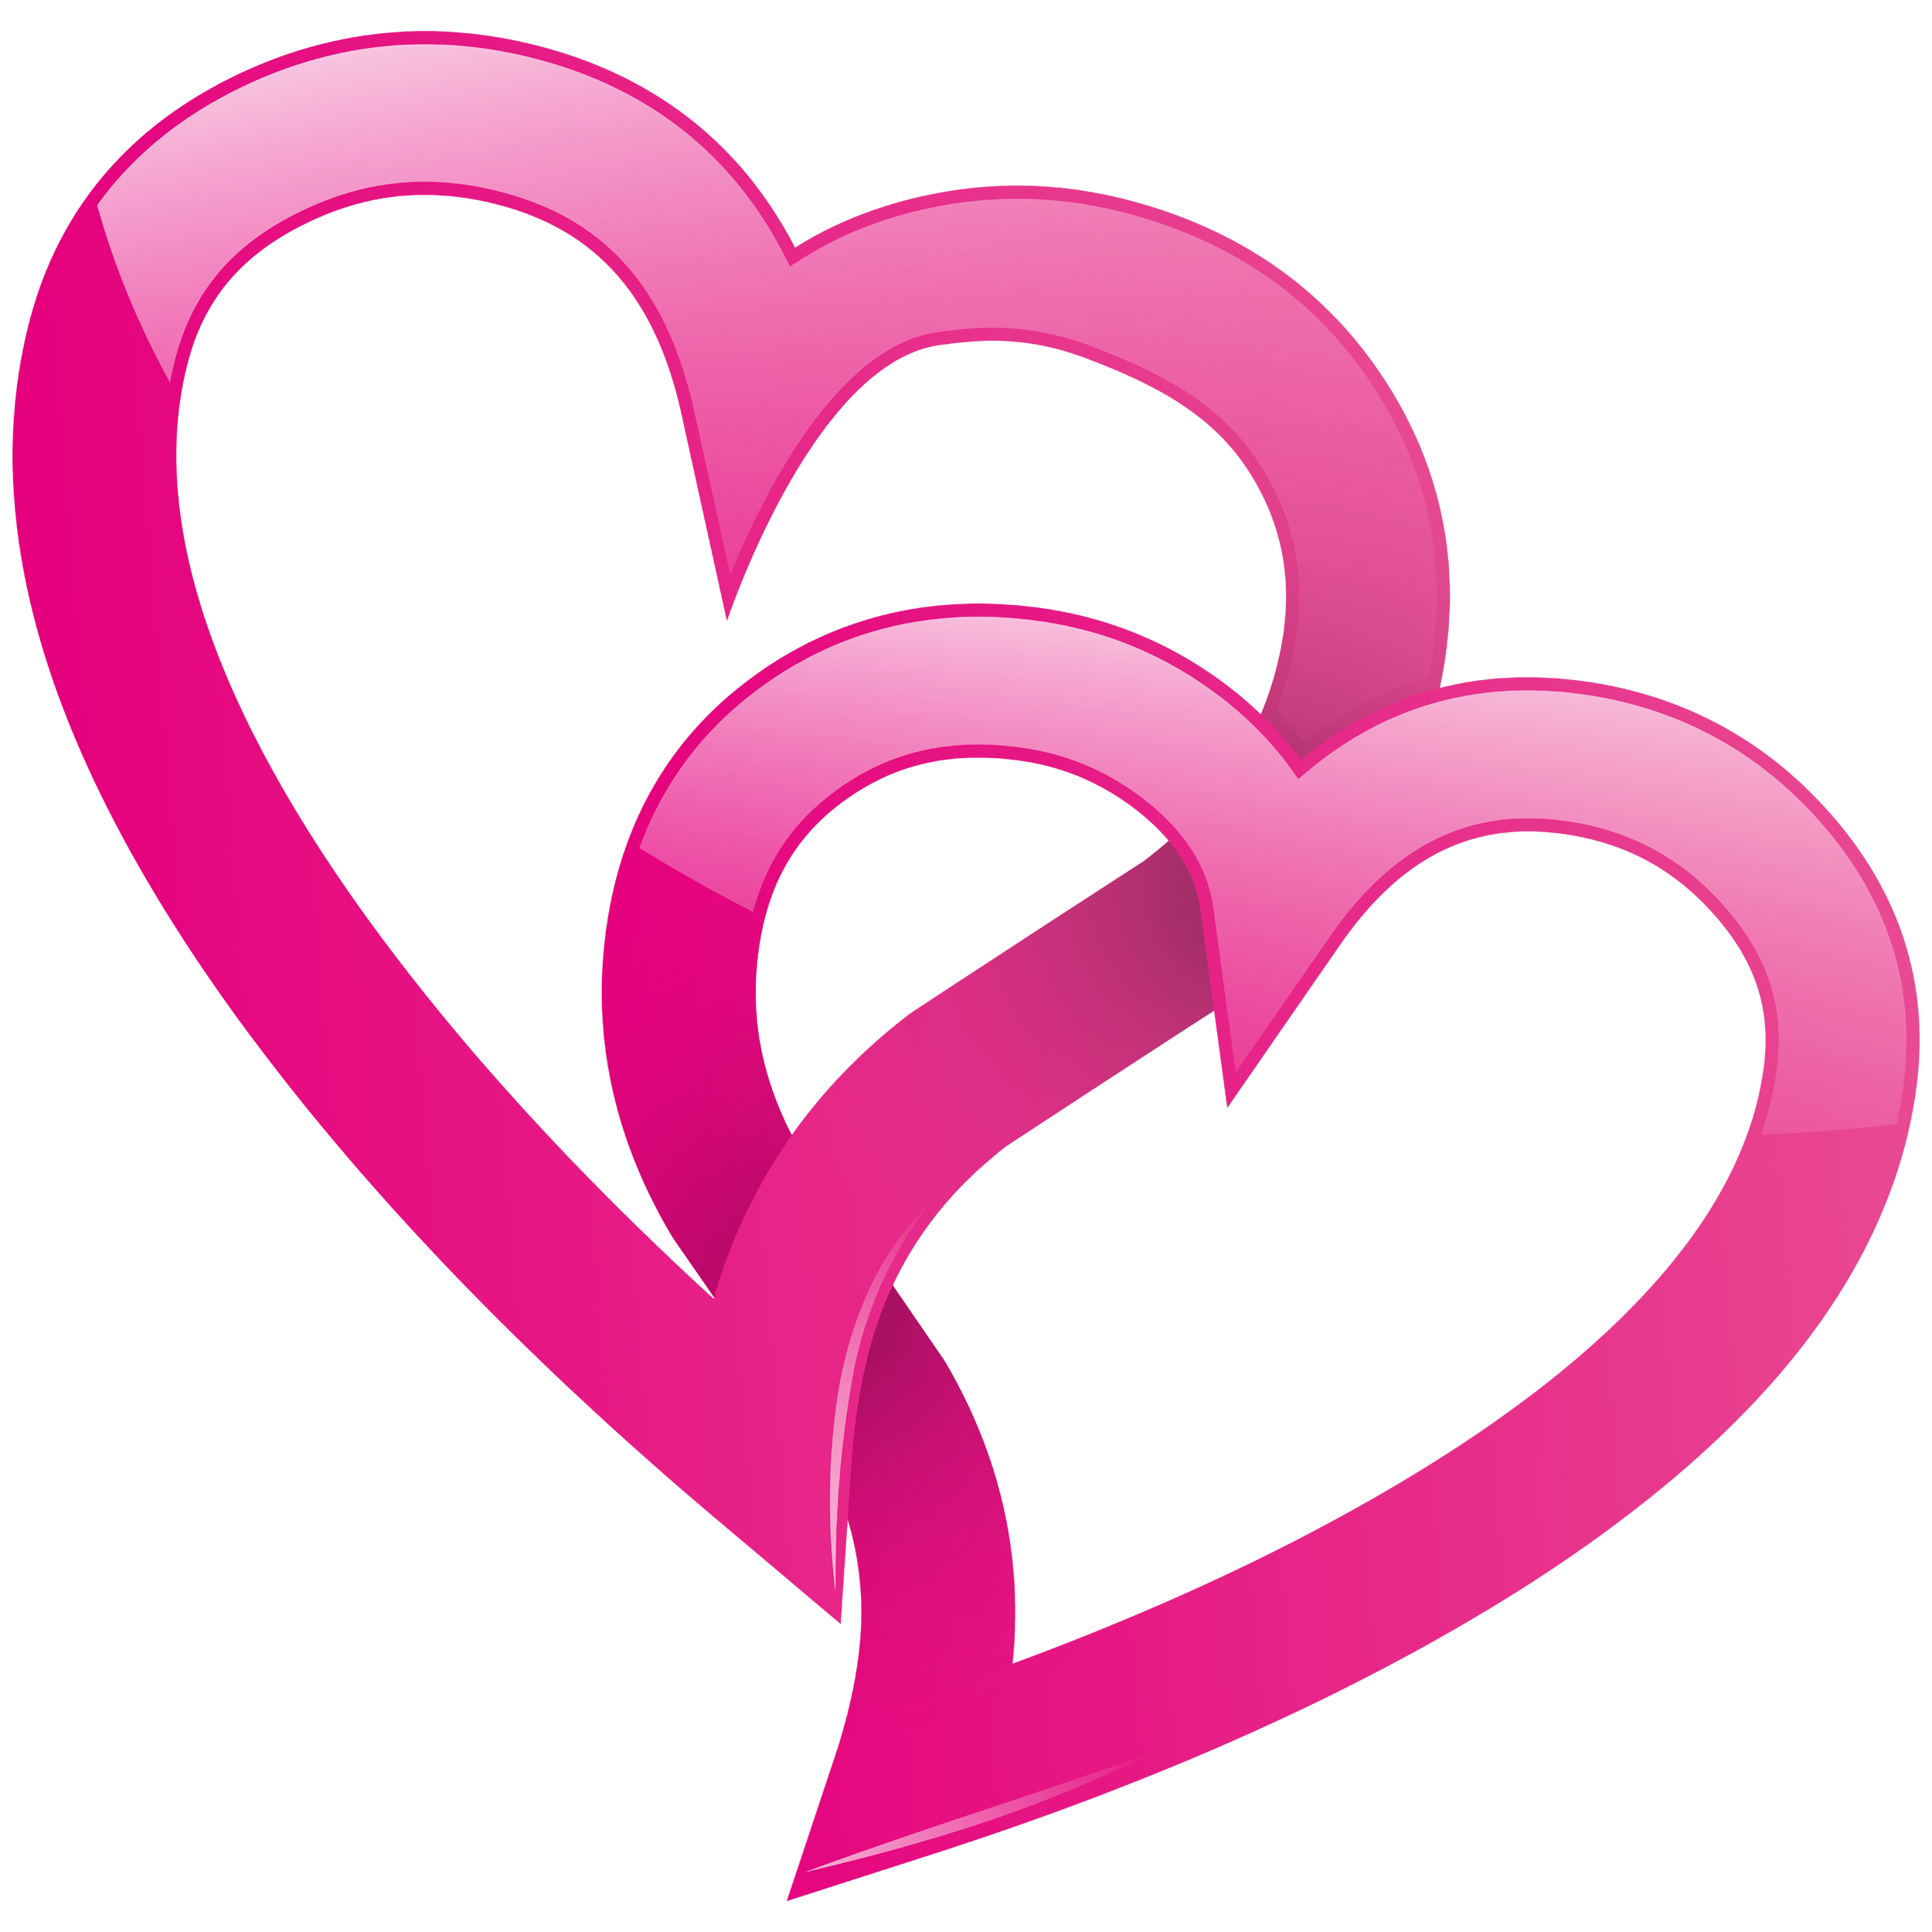 Pink Two Hearts Transparent Clipart